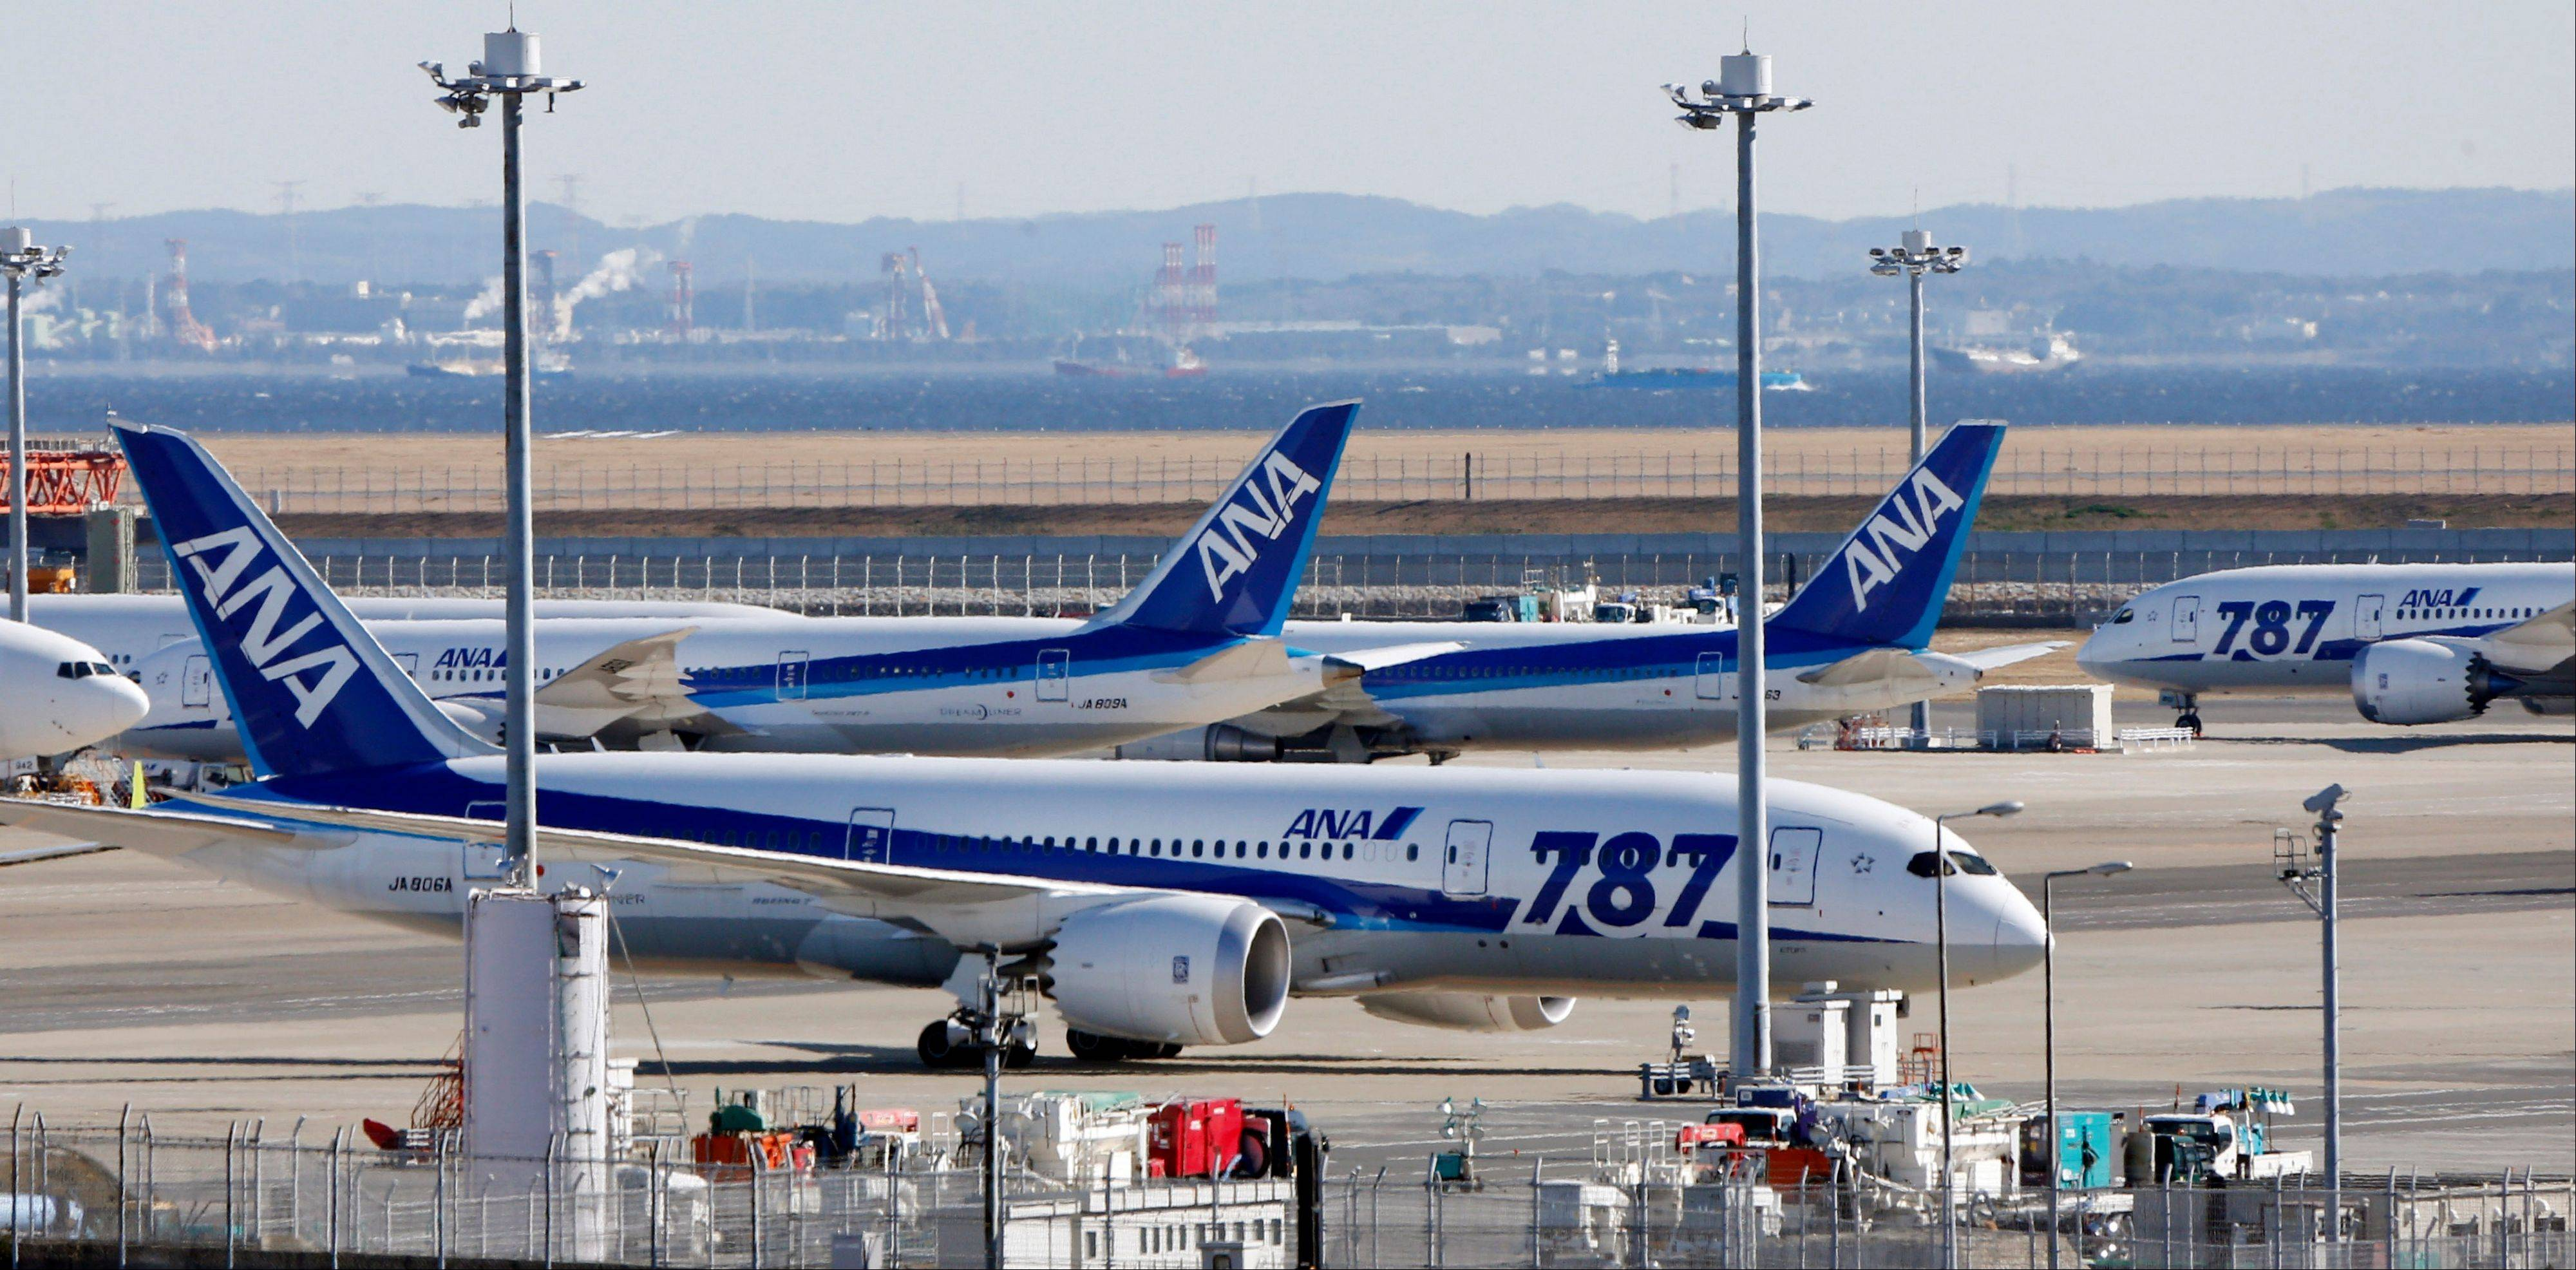 "All Nippon Airways' Boeing 787 ""the Dreamliner"" passenger jets park on the tarmac at Haneda airport in Tokyo. Though Dreamliners remain grounded, Boeing is selling smaller jetliners."